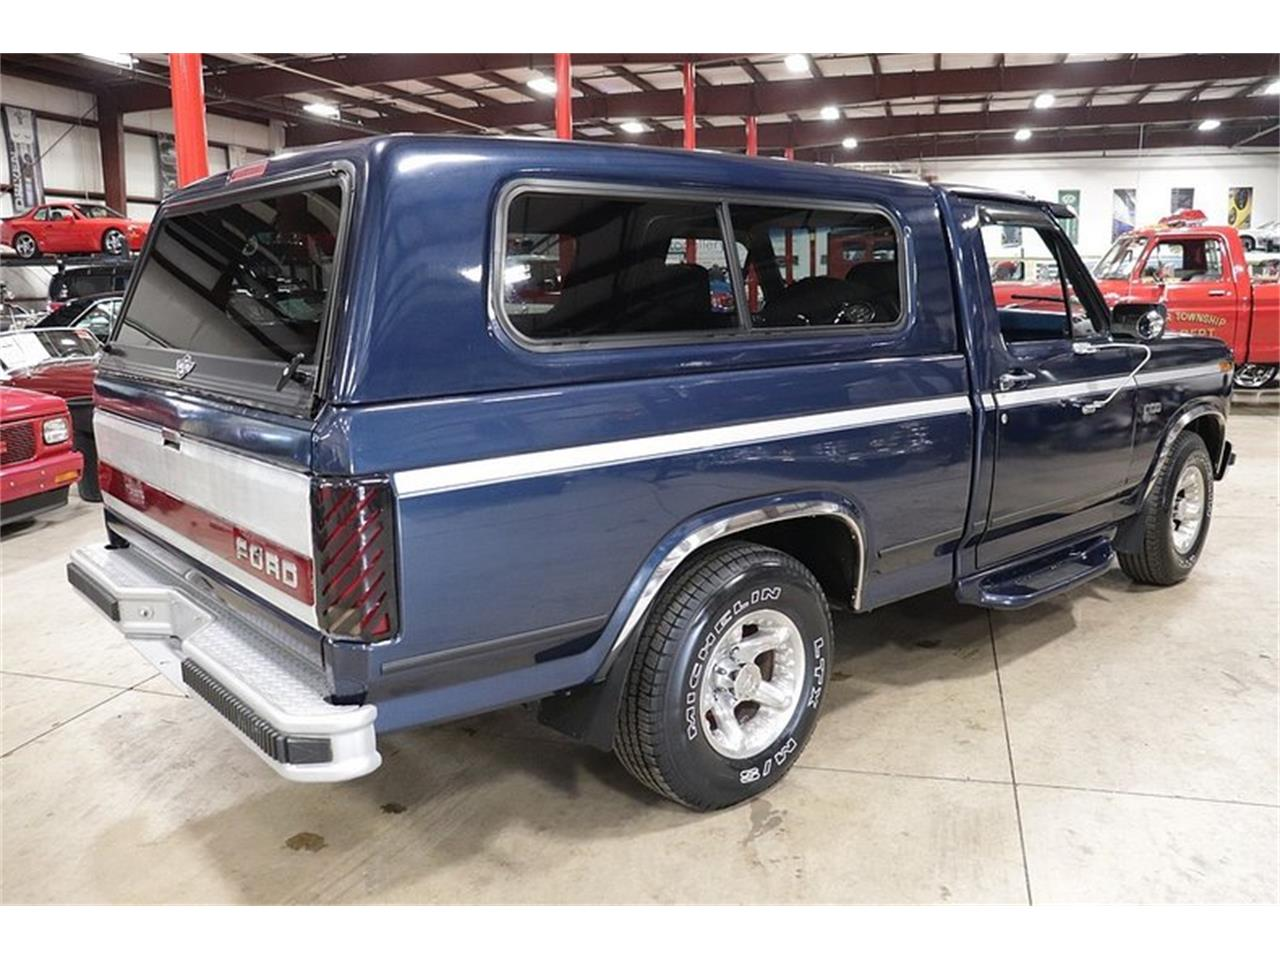 For Sale: 1983 Ford F100 in Kentwood, Michigan